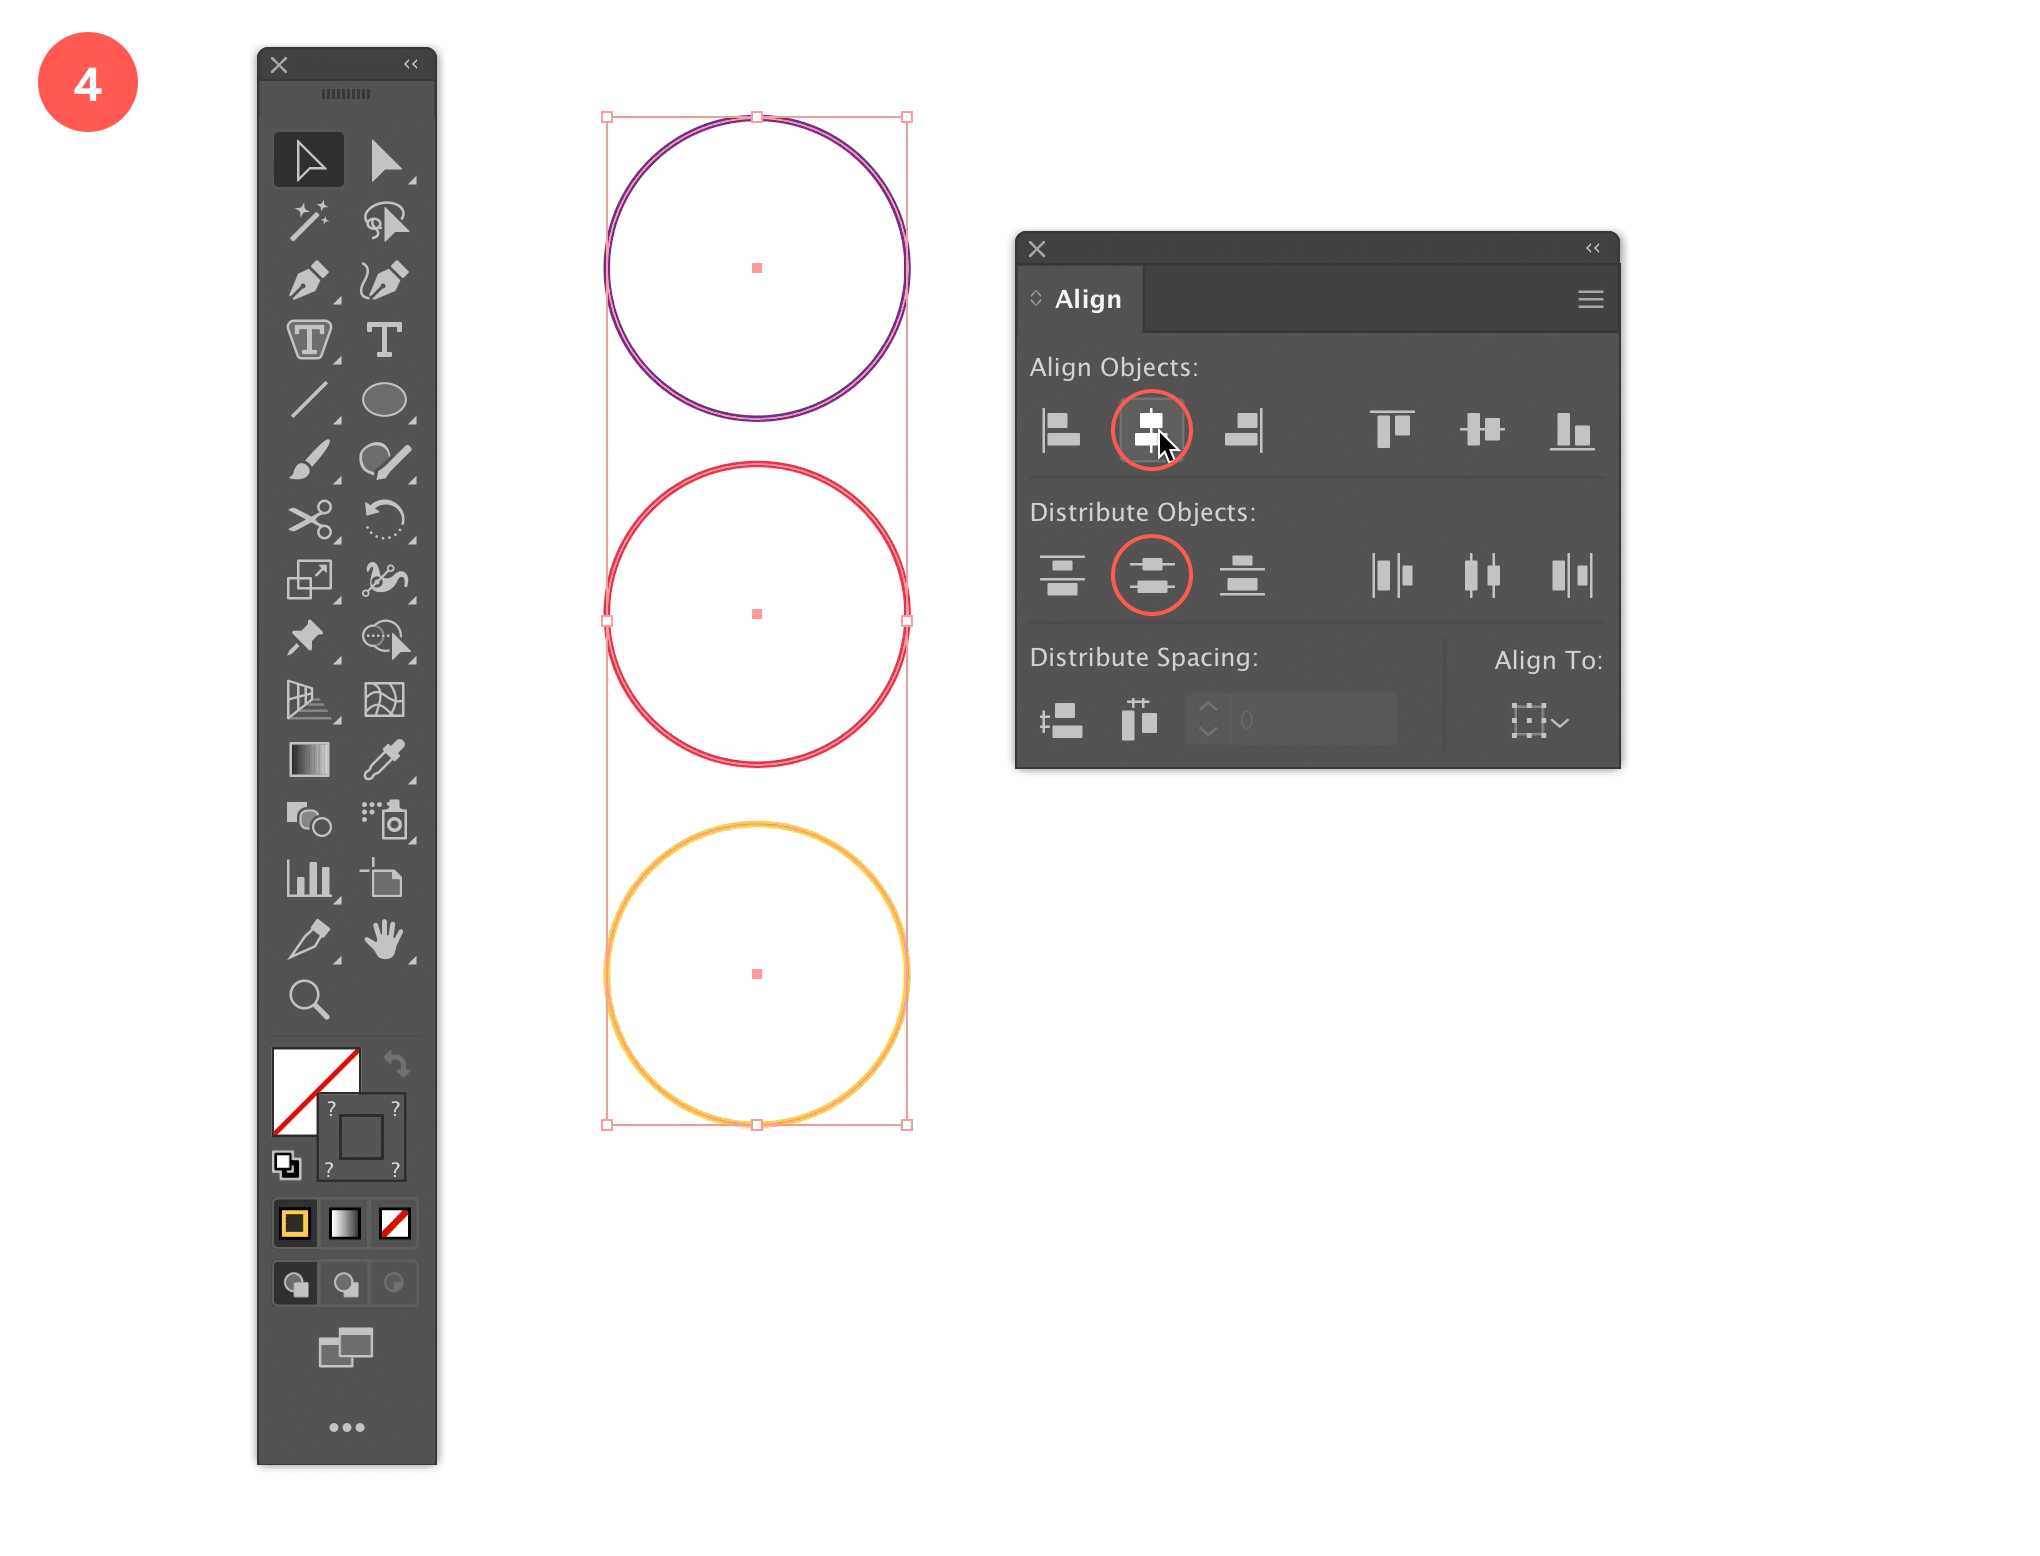 Step 4: Align the Circles